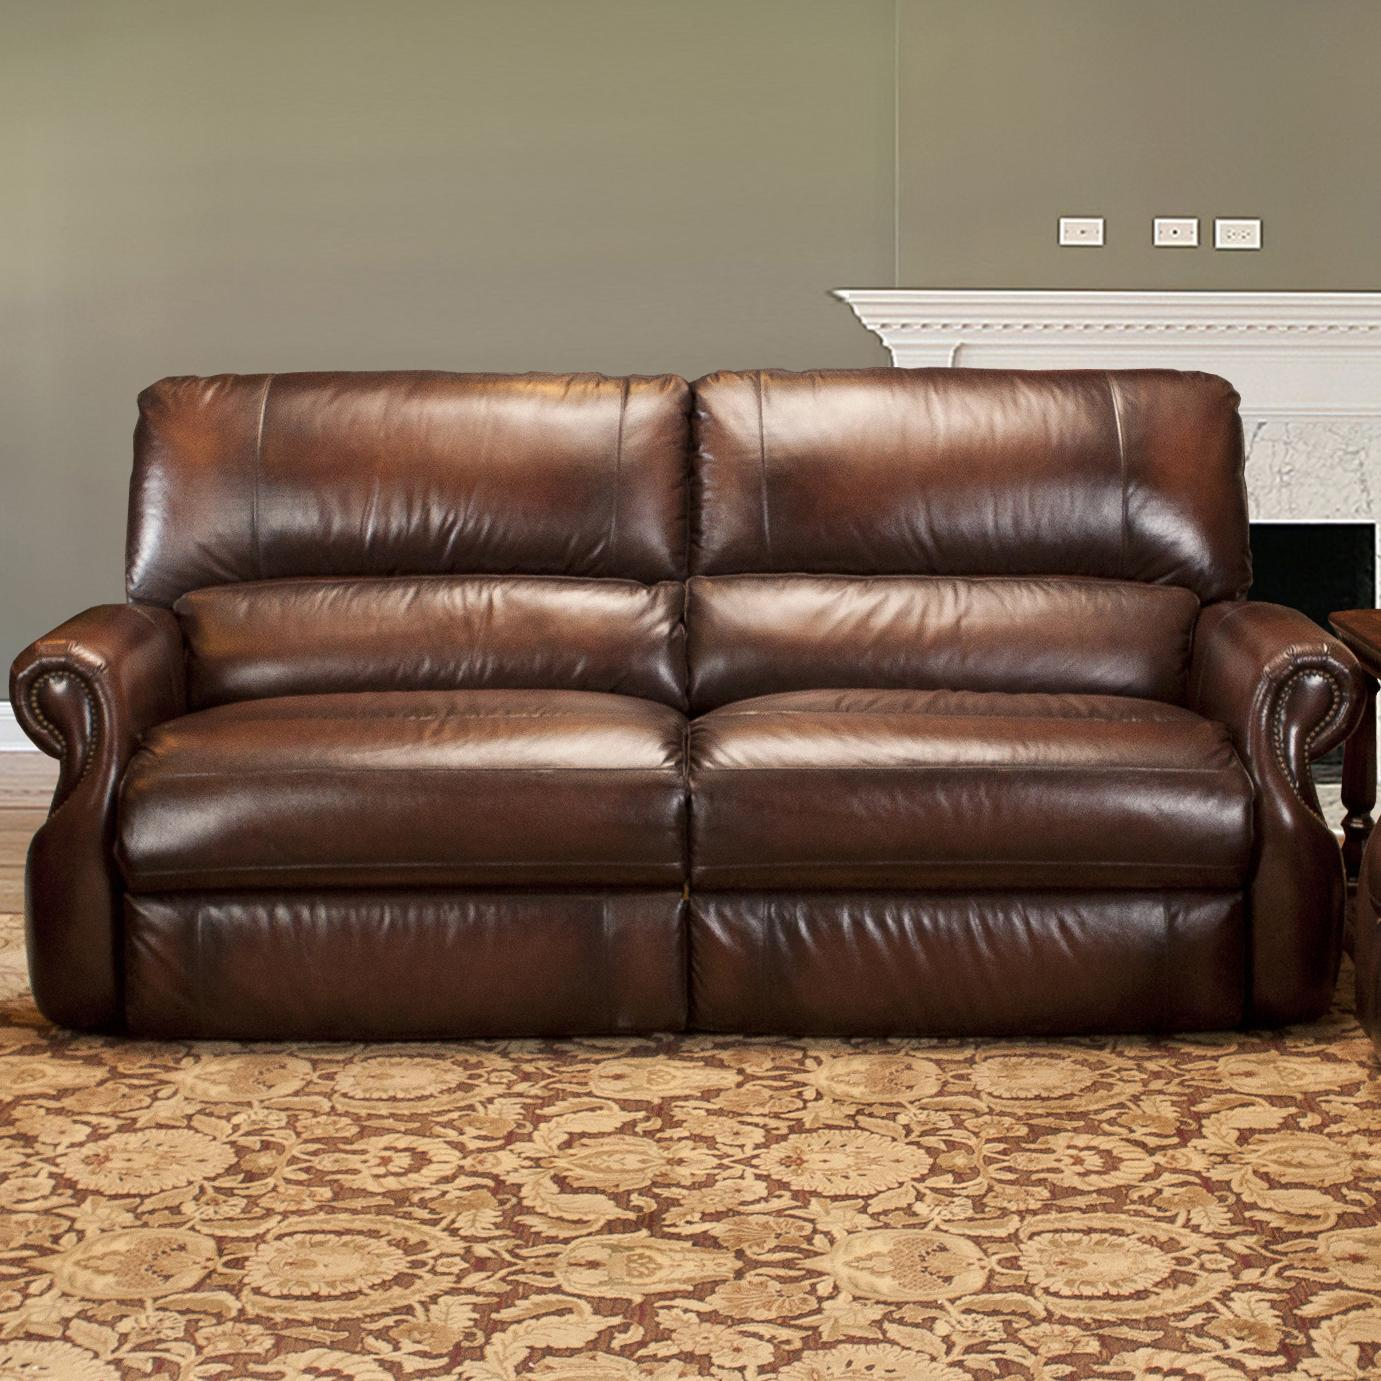 Parker Living Hawthorne Traditional Dual Power Reclining Sofa - Item Number: MHAW-832P-BR